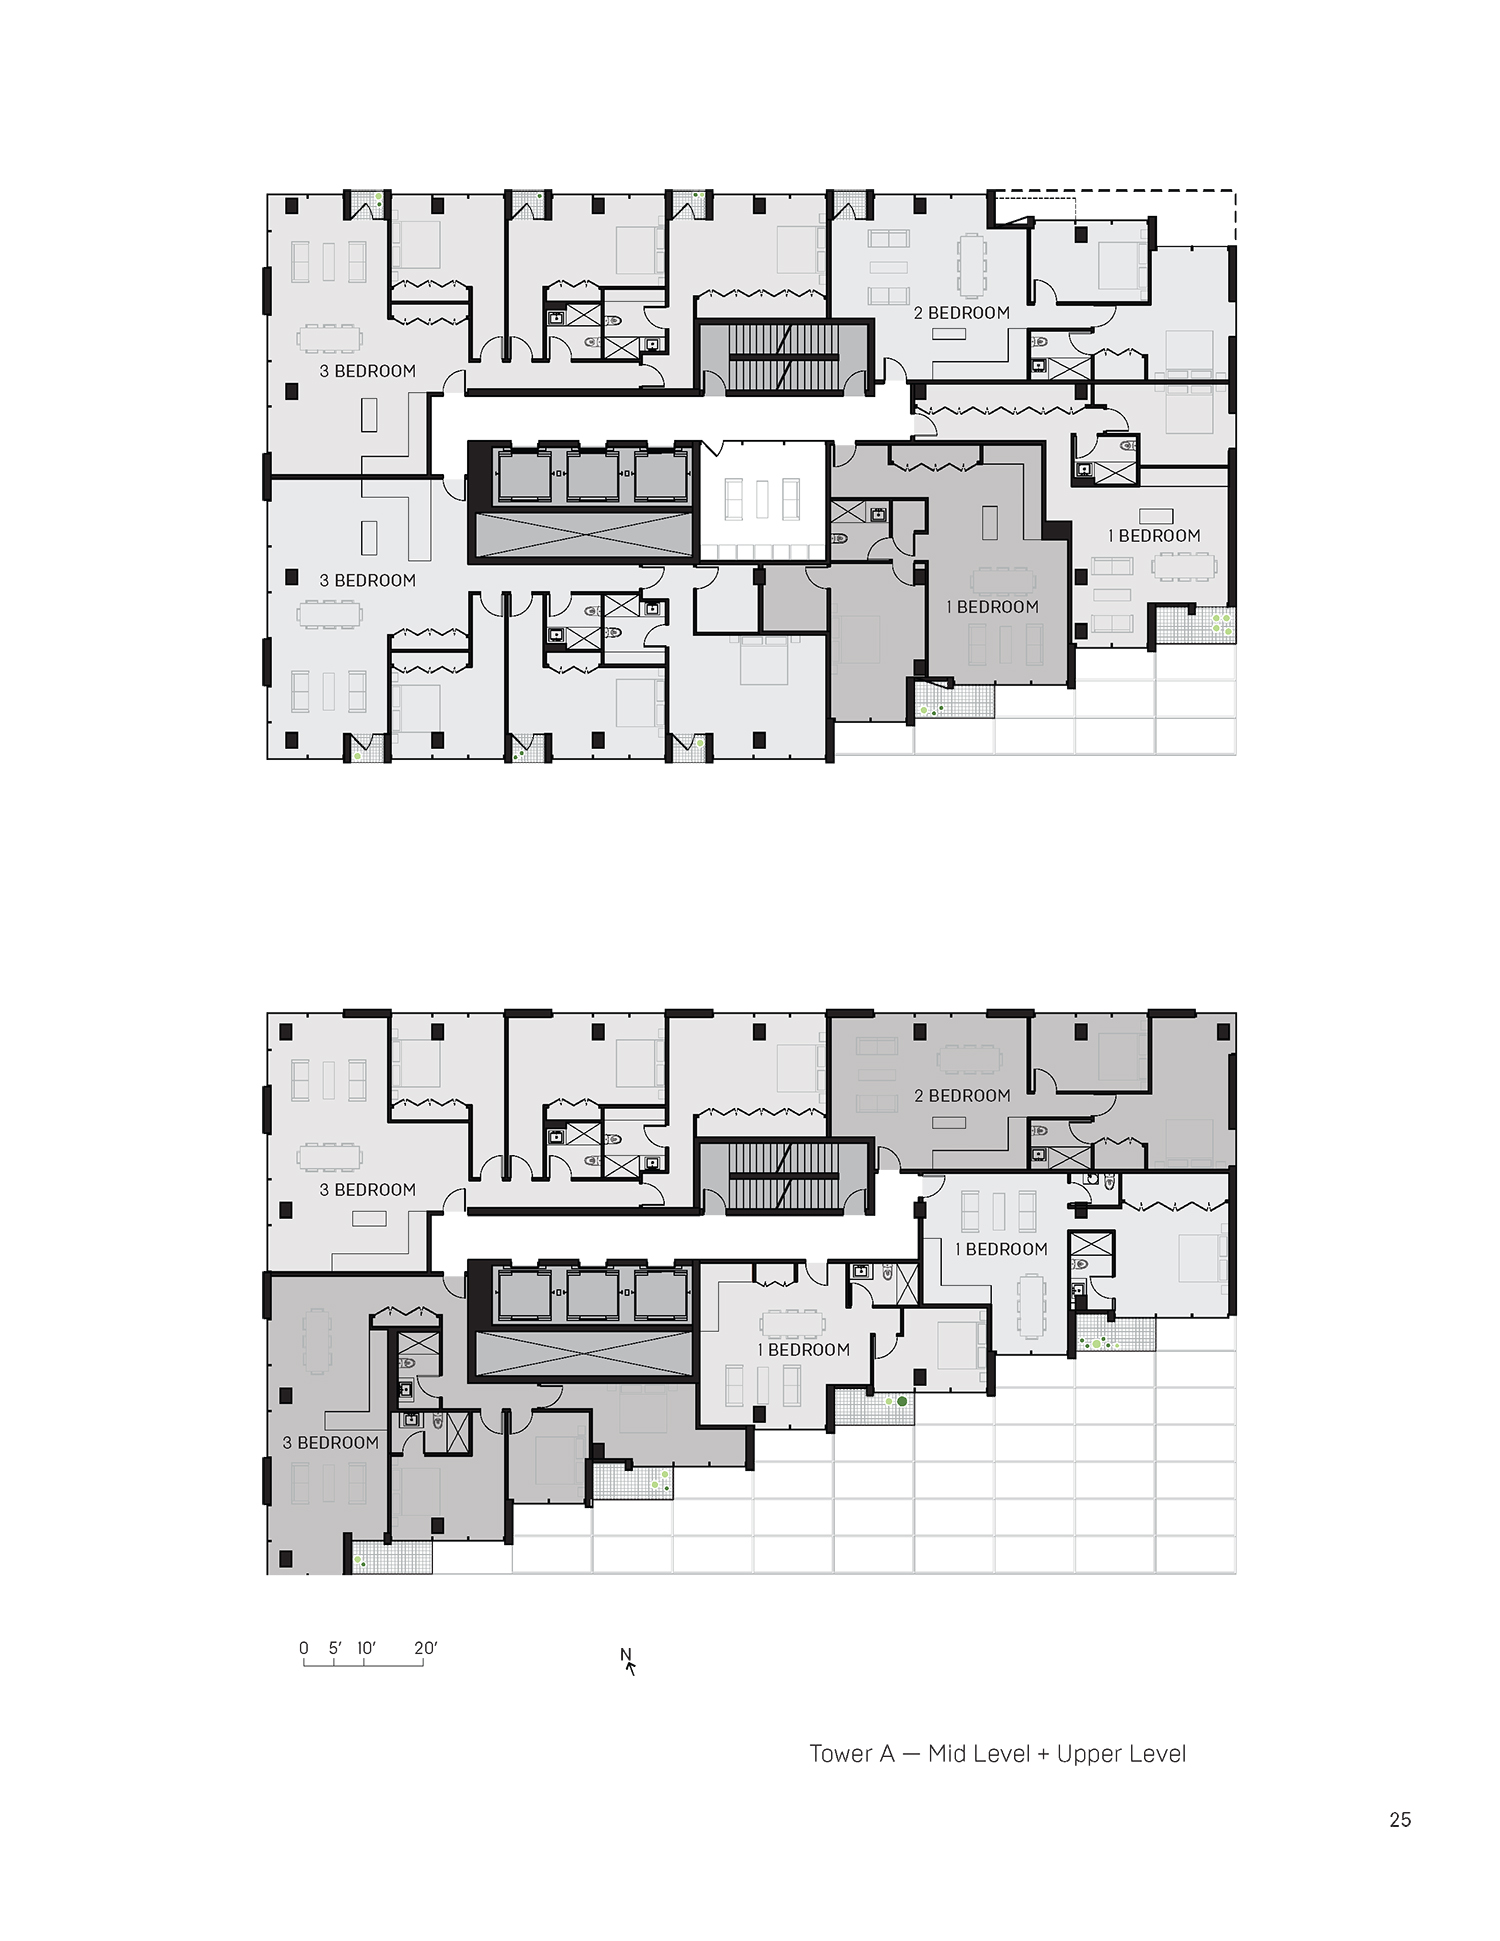 Pier6 - TwoThreeBBP - Architecture Booklet - Single Pages-25.jpg